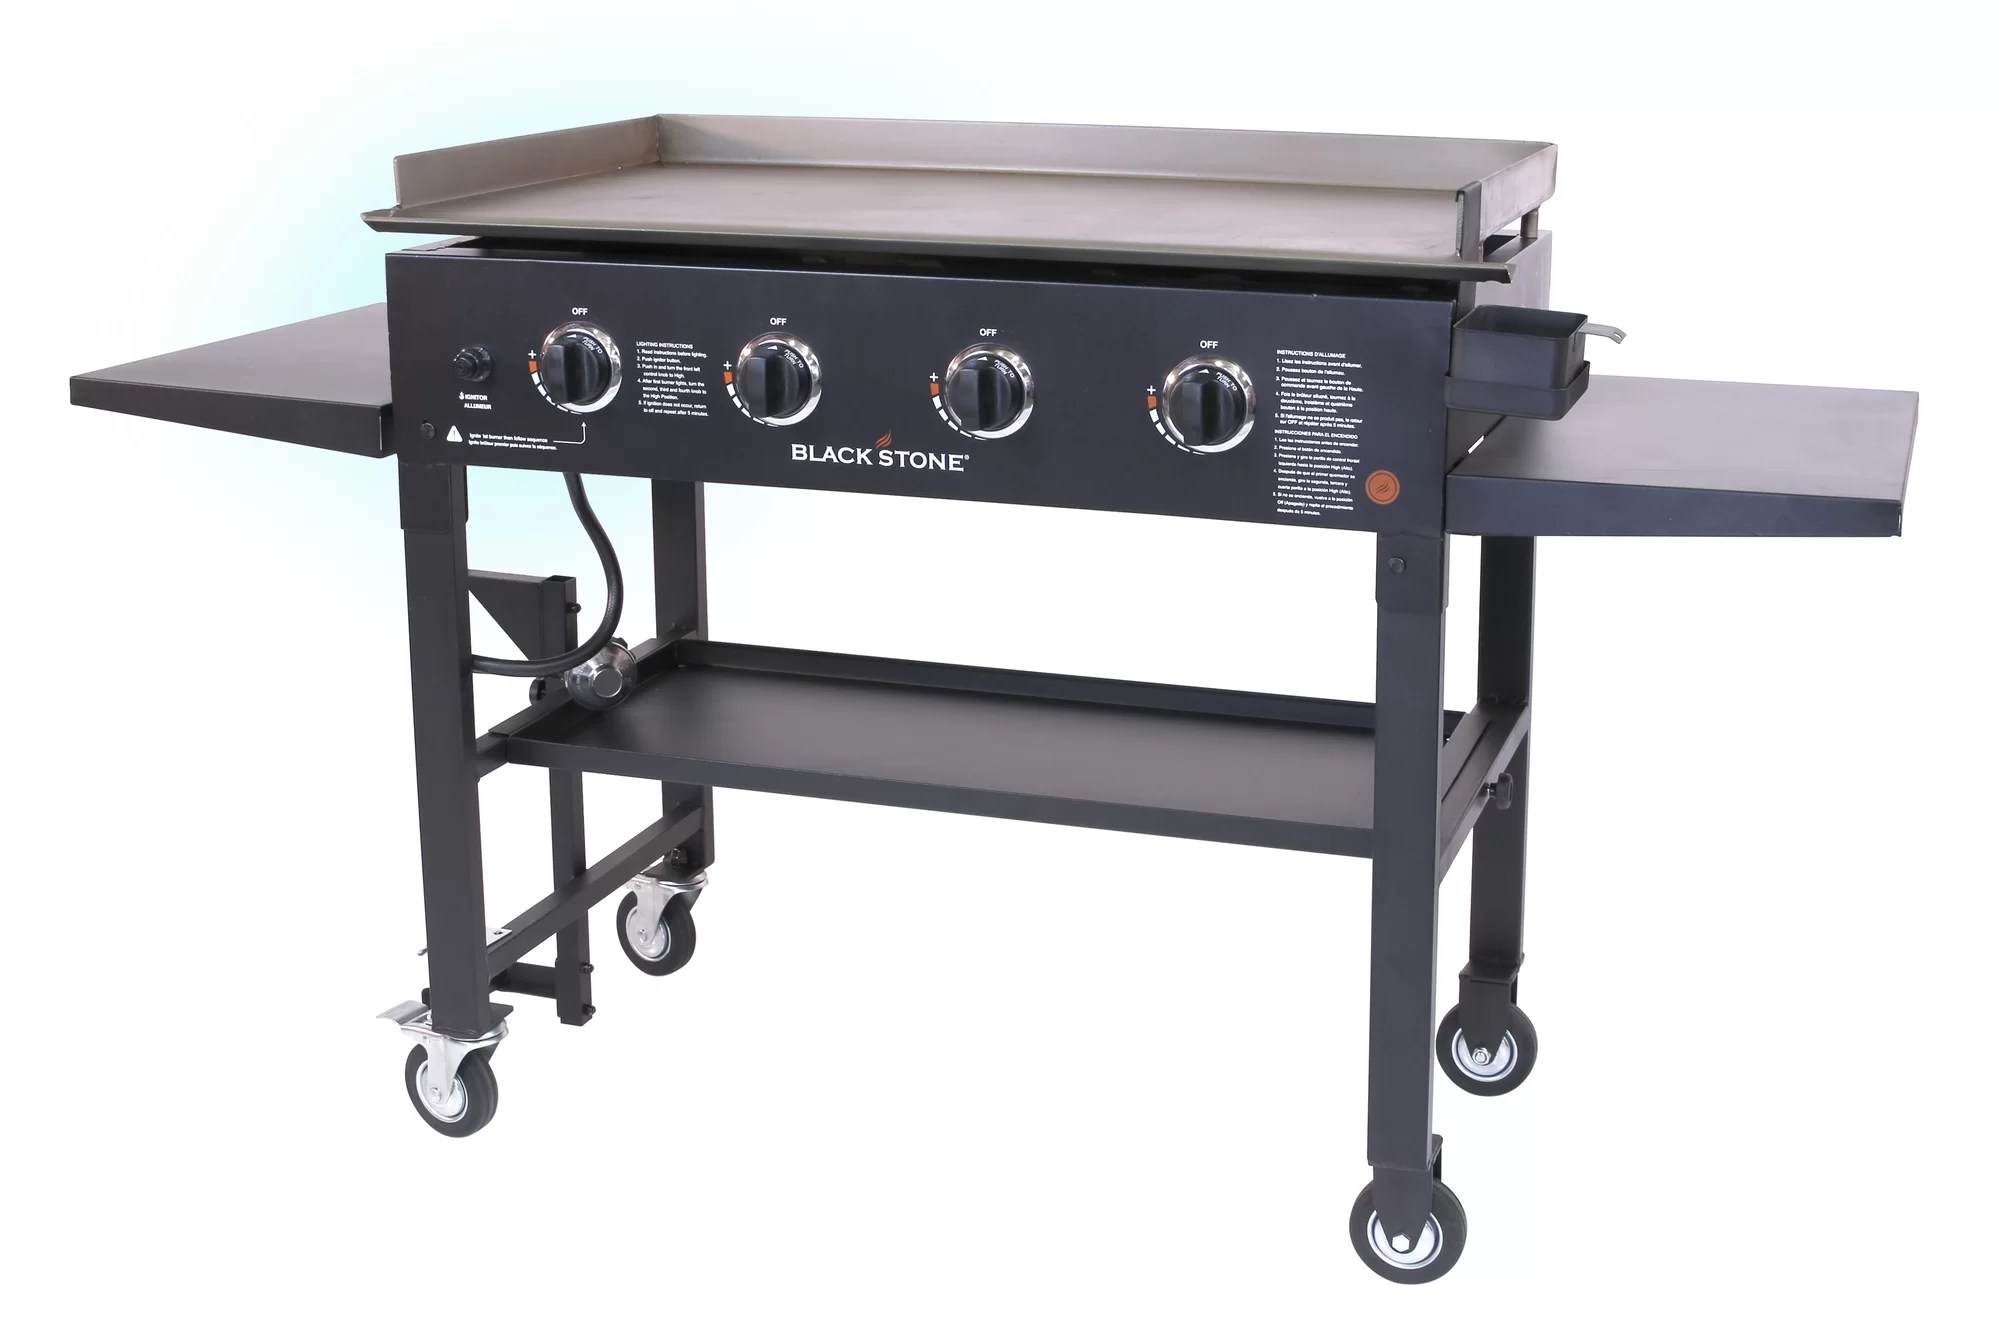 outdoor kitchen griddle island with sink and dishwasher gas grill flat top 4 burner cooktop portable bbq